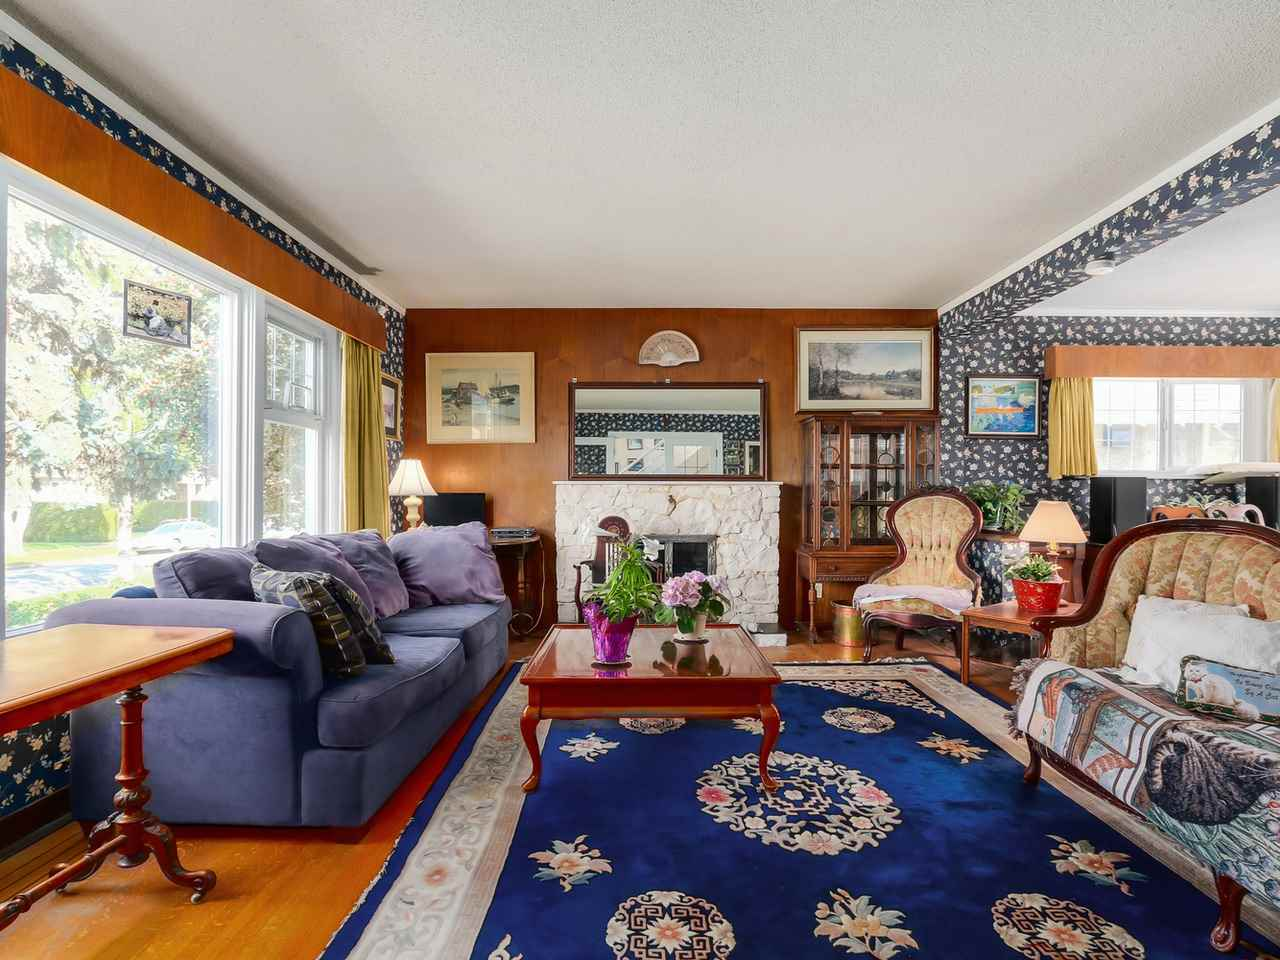 Photo 6: 2796 W 21ST Avenue in Vancouver: Arbutus House for sale (Vancouver West)  : MLS(r) # R2078868